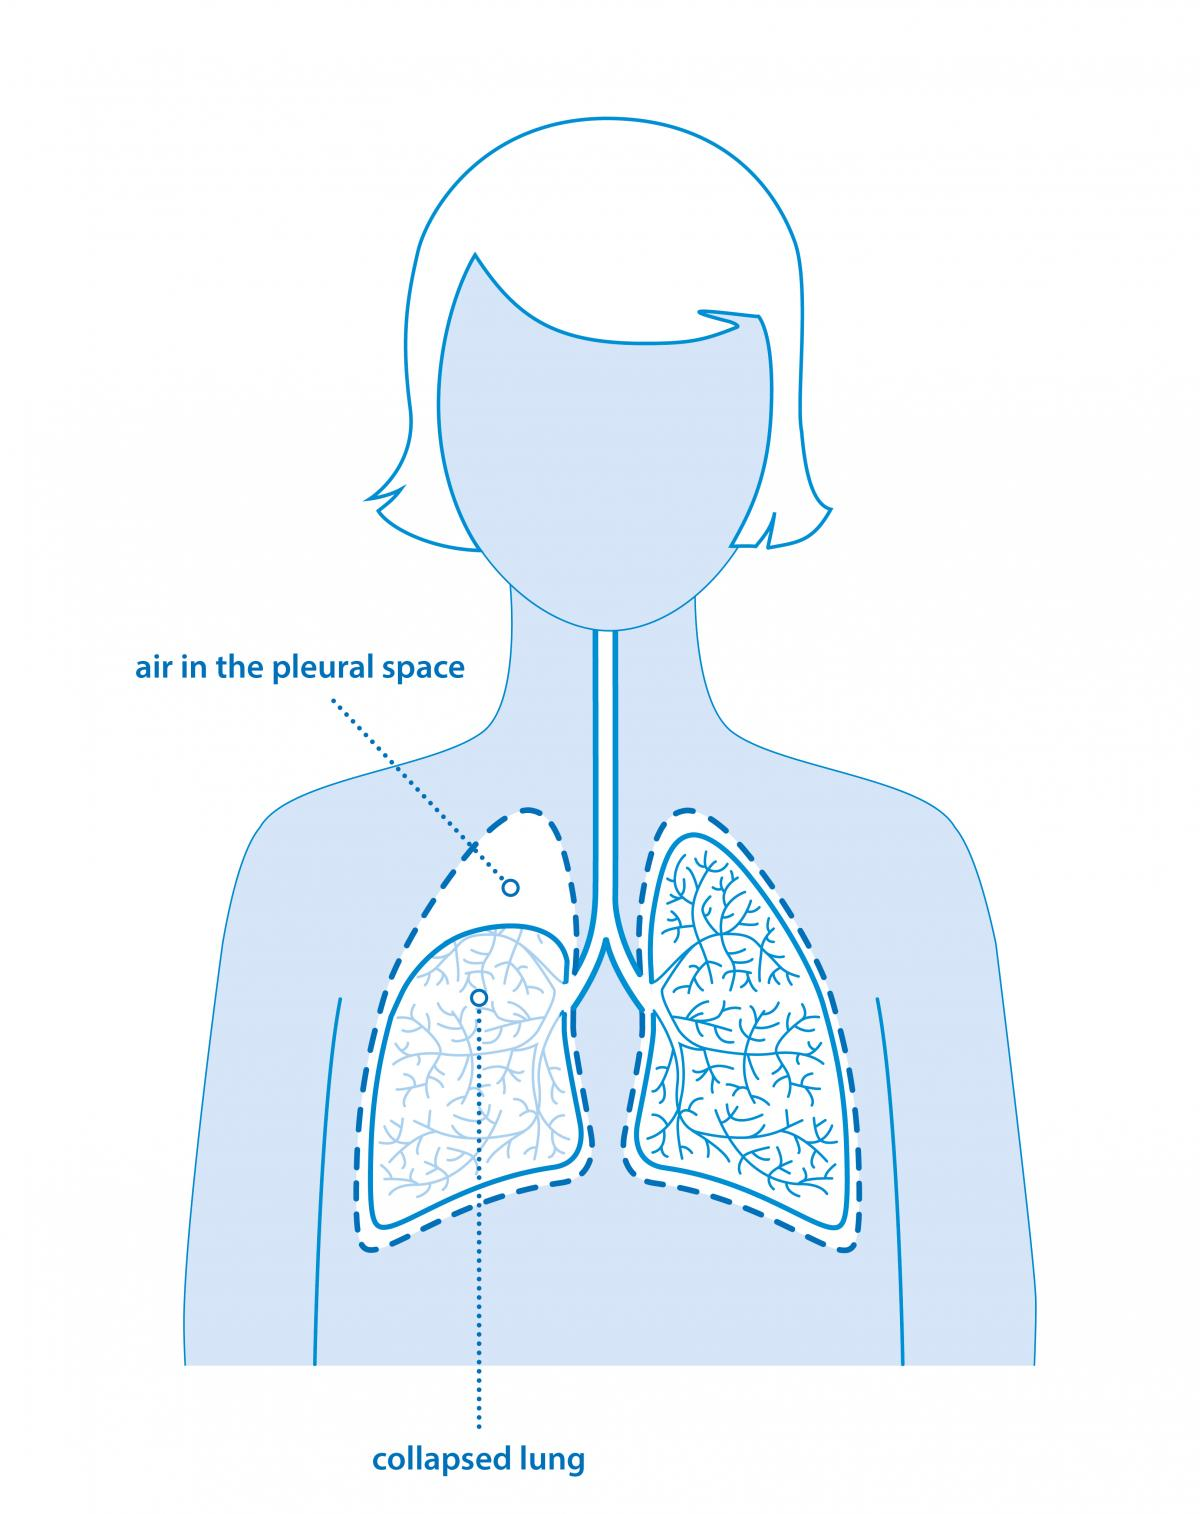 Pneumothorax (collapsed lung) | British Lung Foundation on costal surface of lung, lung nodules, lung drawing, mediastinal surface of lung, clara cell, lung lobes, lung infection, conducting zone, lung model, respiratory bronchiole, bronchopulmonary segment, lung structure, lung hilum, base of lung, borders of lung, apex of lung, alveolar duct, horizontal fissure of right lung, lingula of left lung, lung cartoon, lung cross section, lung function, lung health, lung segments, lung apex, lung animation, lung disease, root of the lung, oblique fissure, lung force, cardiac notch, lung bleb, terminal bronchiole, hilum of lung, lung tree birds, right lung, lung mri, lung volumes, pulmonary alveolus,